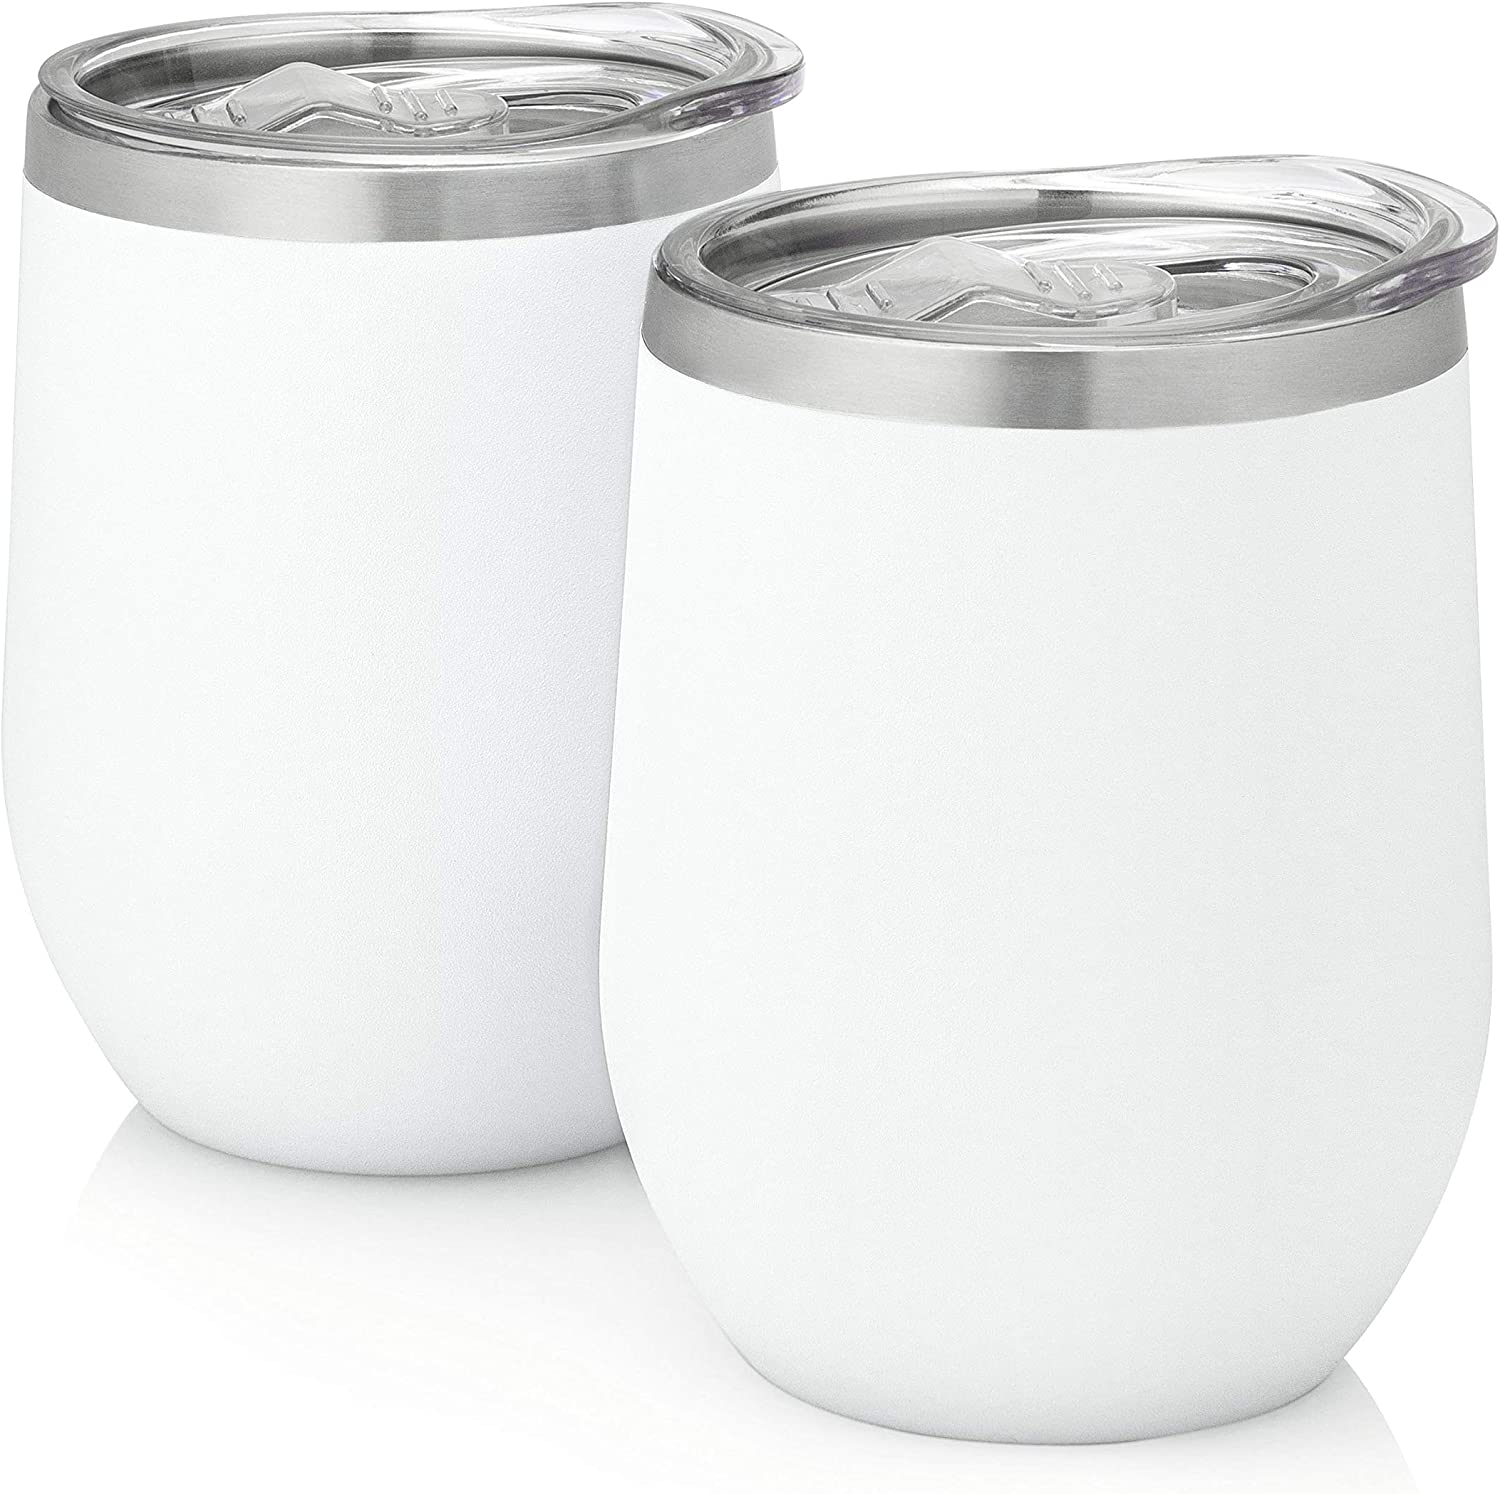 MiracleHour Stainless Steel Wine Tumbler with Lid 12oz of 70% OFF Outlet Time sale Set -